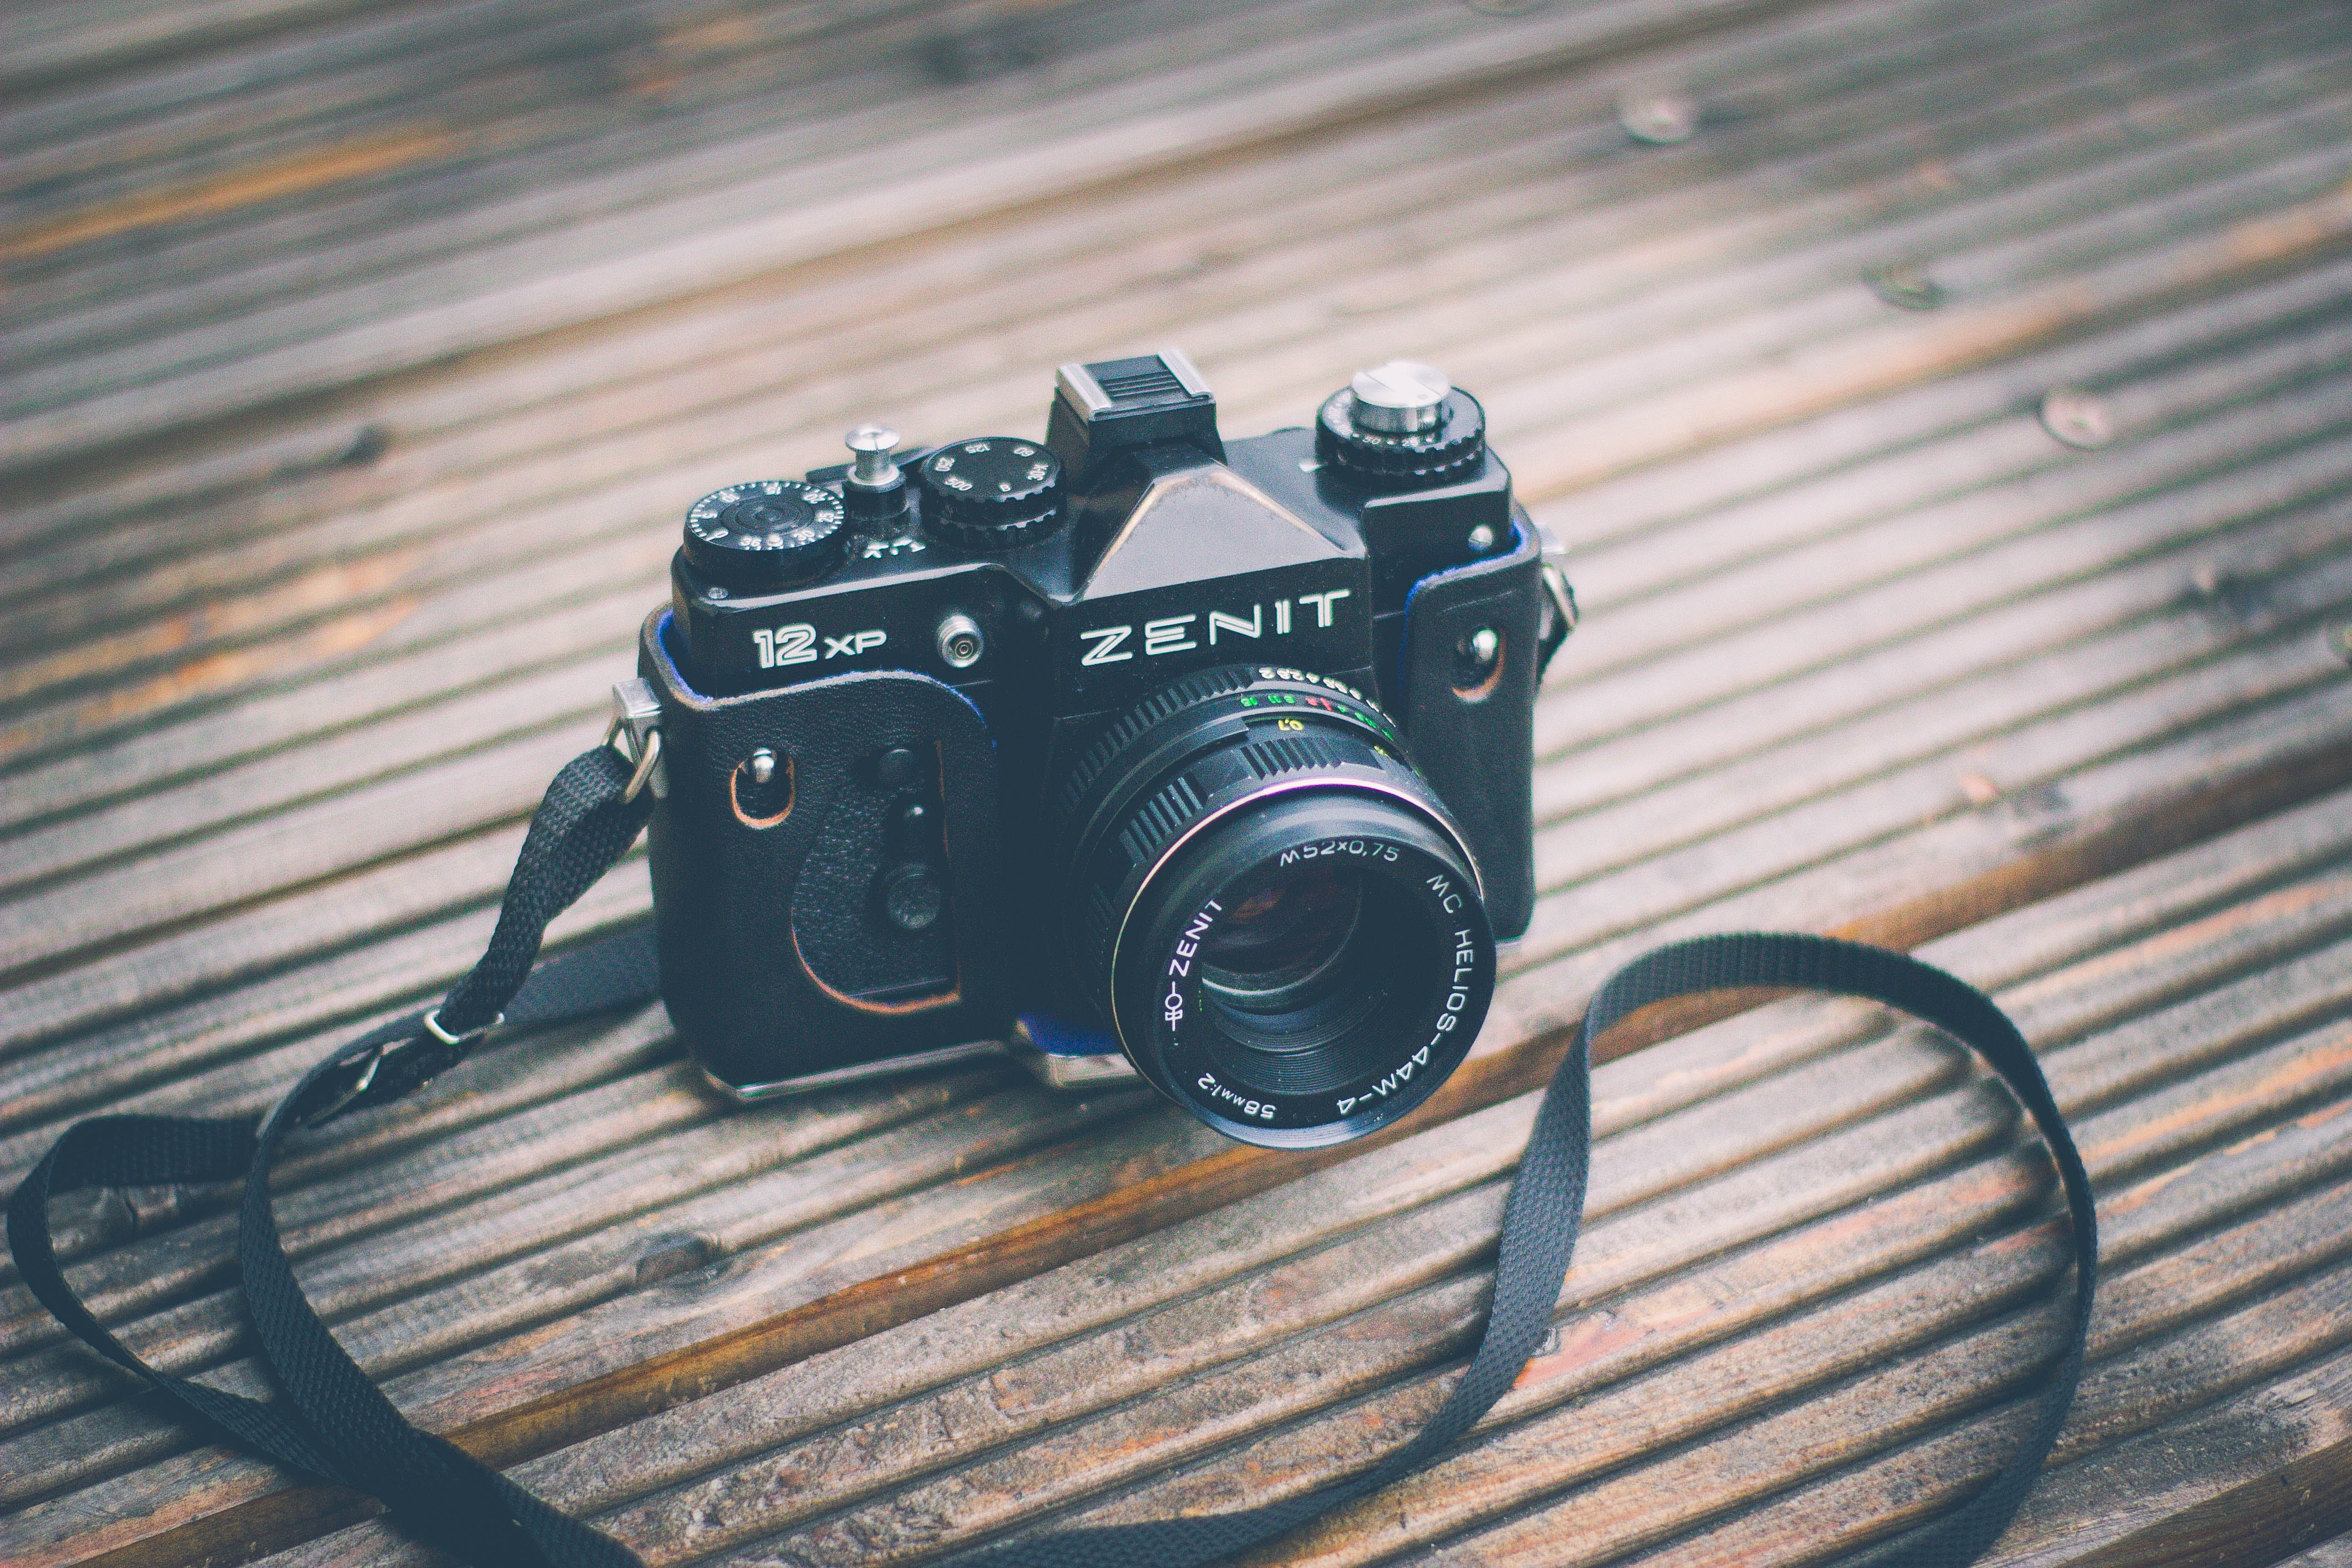 Depth of Field Photograph of Black Zenit Milc-camera